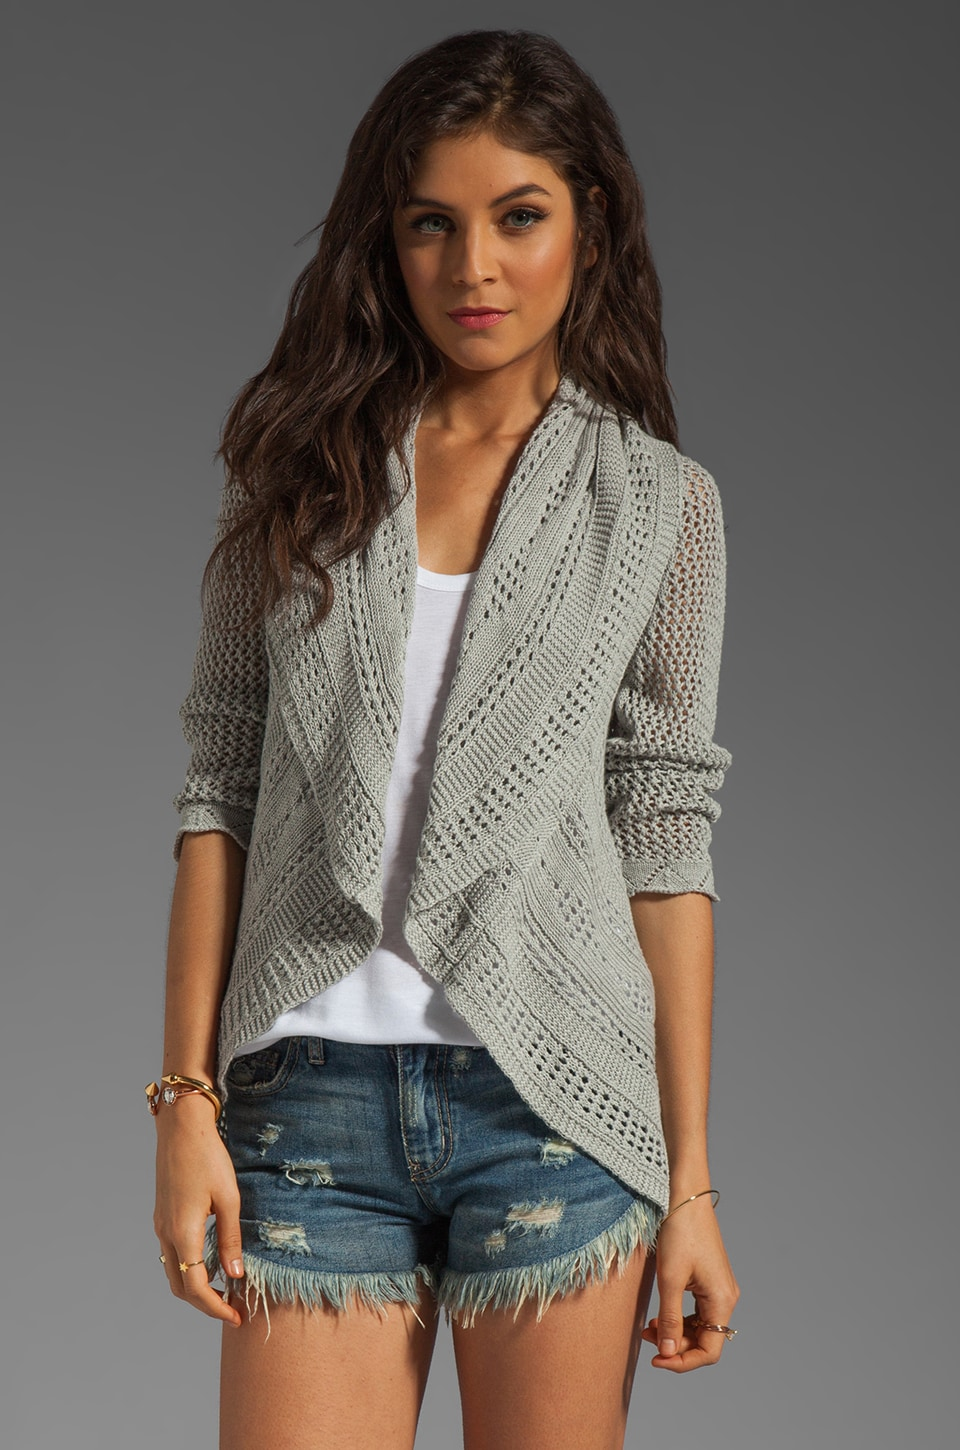 Autumn Cashmere 3/4 Sleeve Pointelle Drape Cardi in Cinderblock